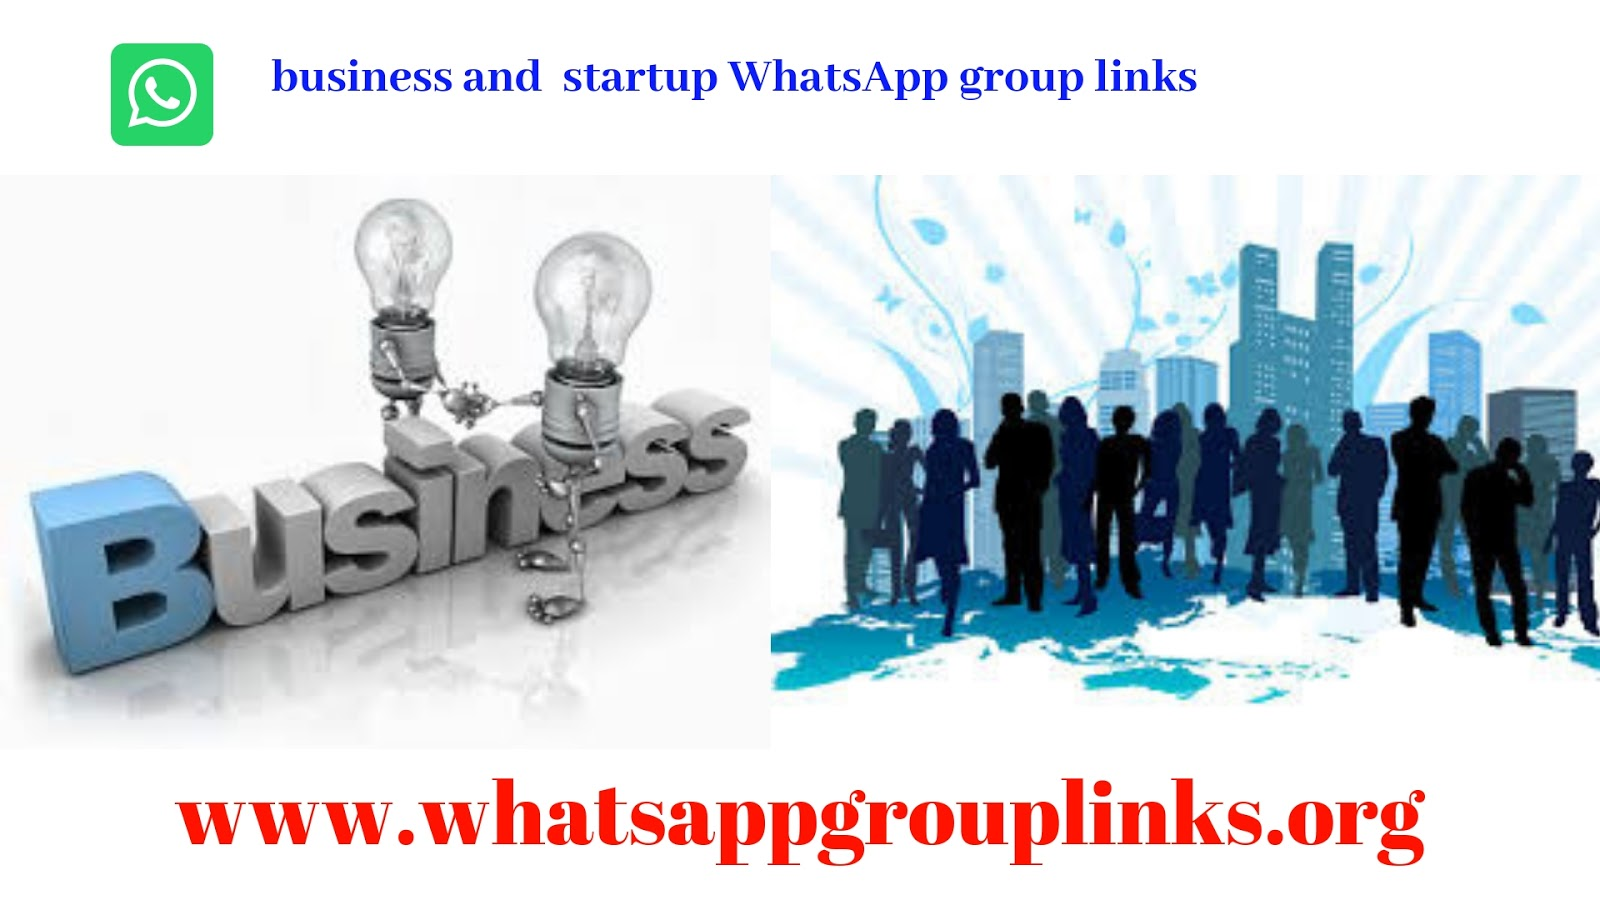 JOIN BUSINESS AND STARTUP WHATSAPP GROUP LINKS LIST